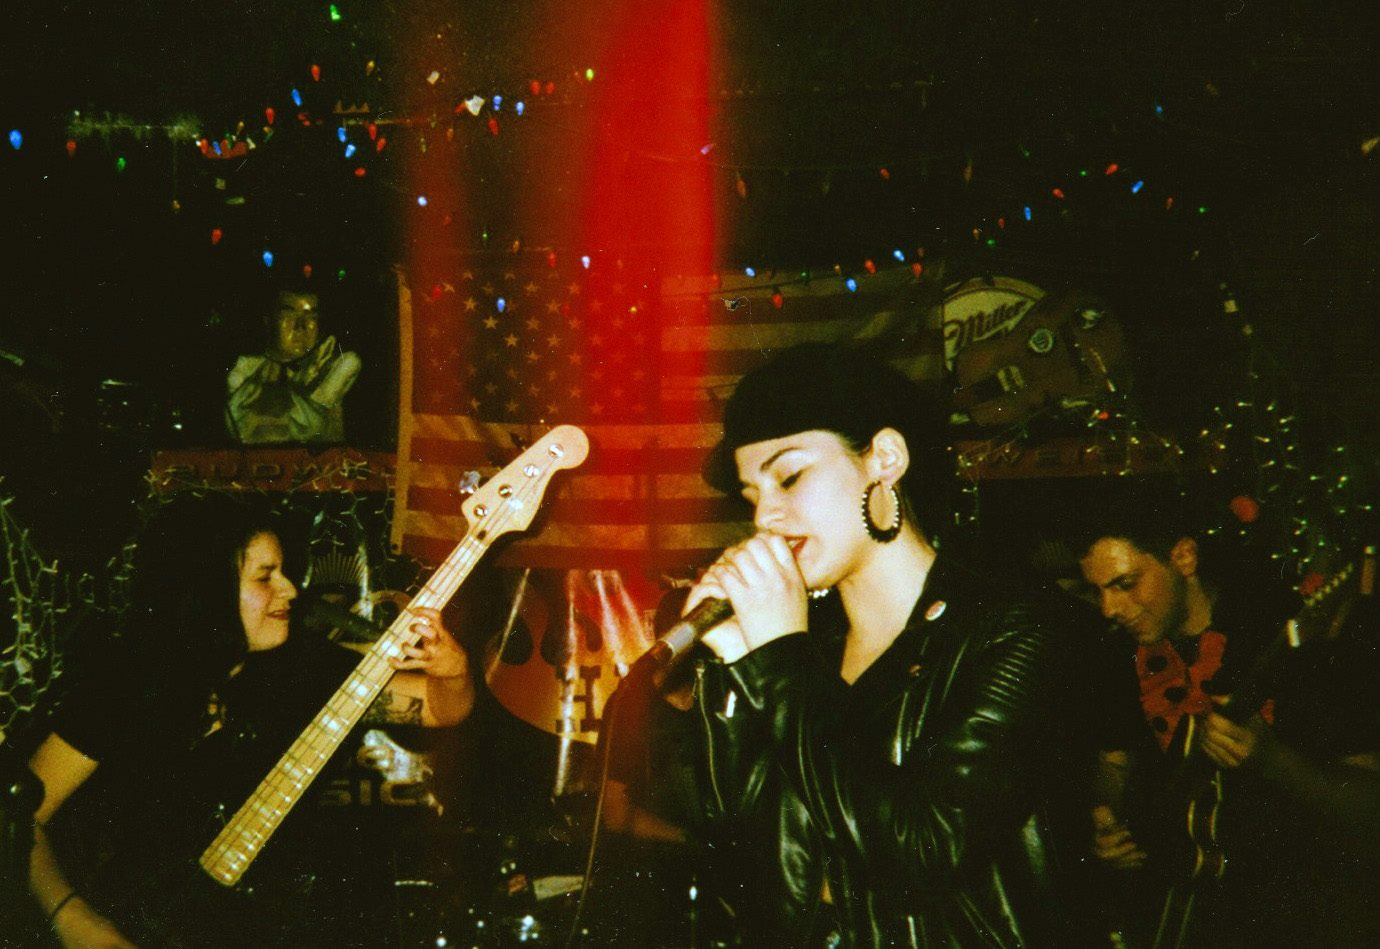 Suzy Exposito (center) performs with her band, Shady Hawkins